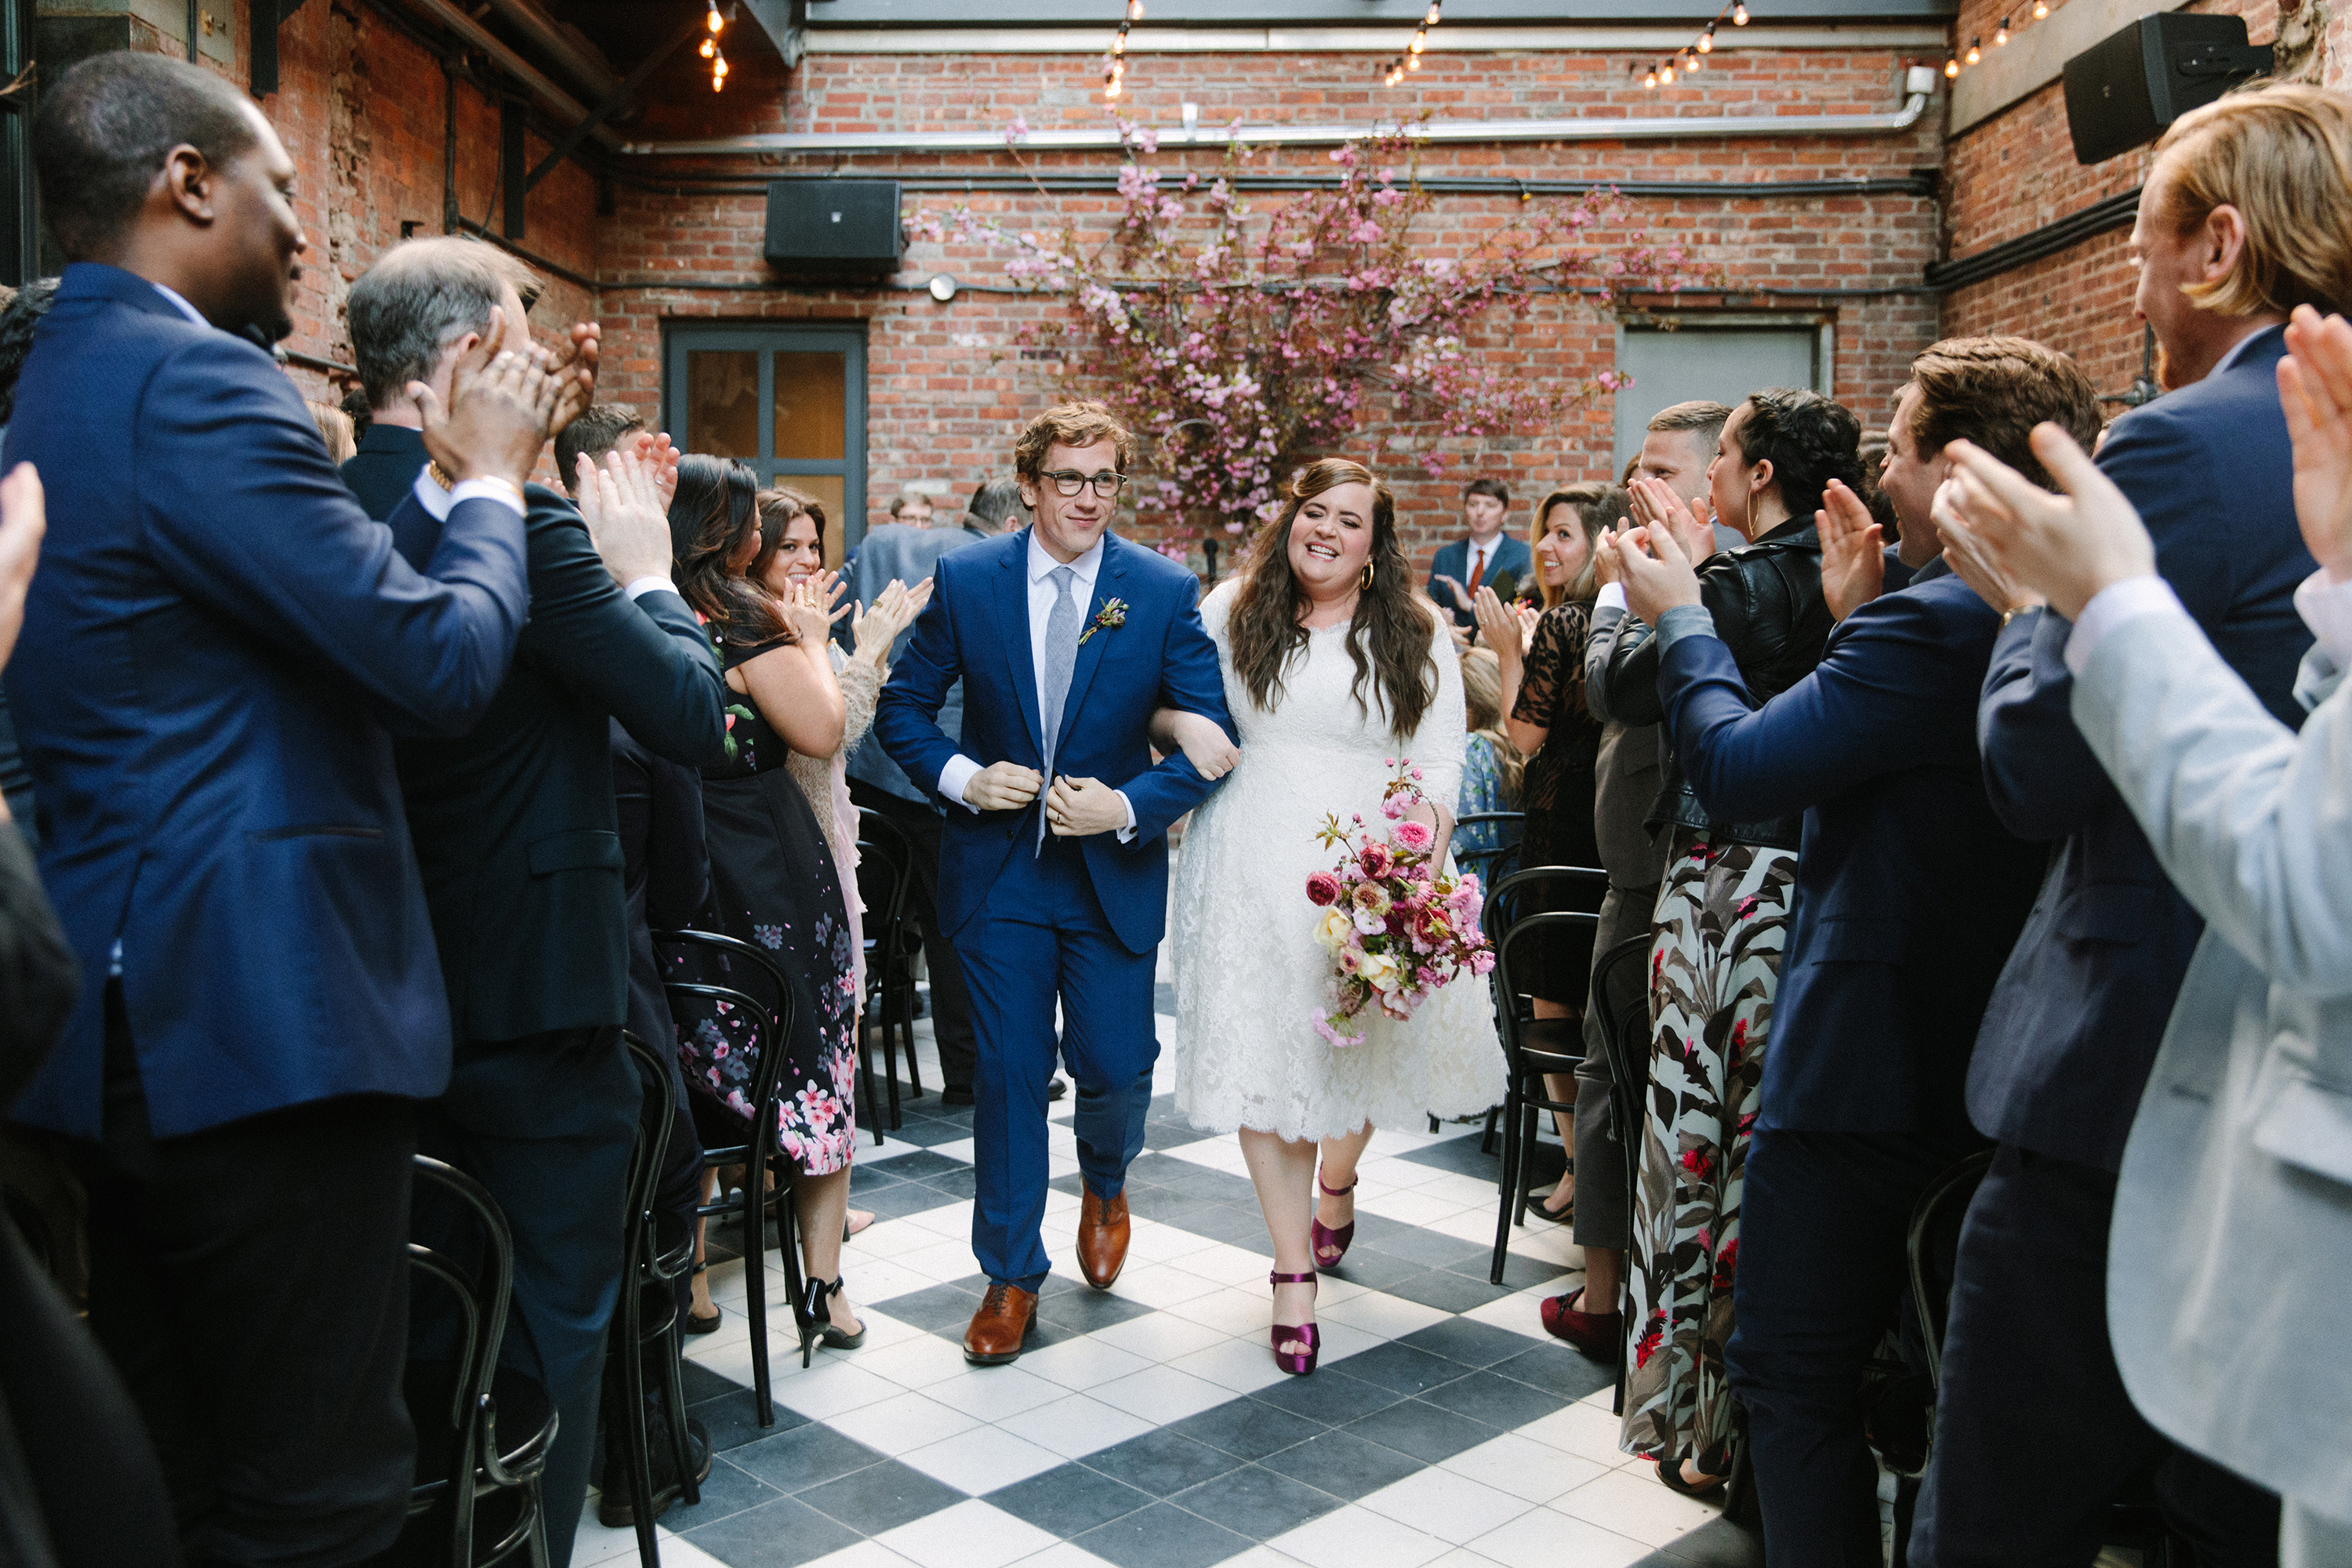 aidy bryant and connor omalley wedding